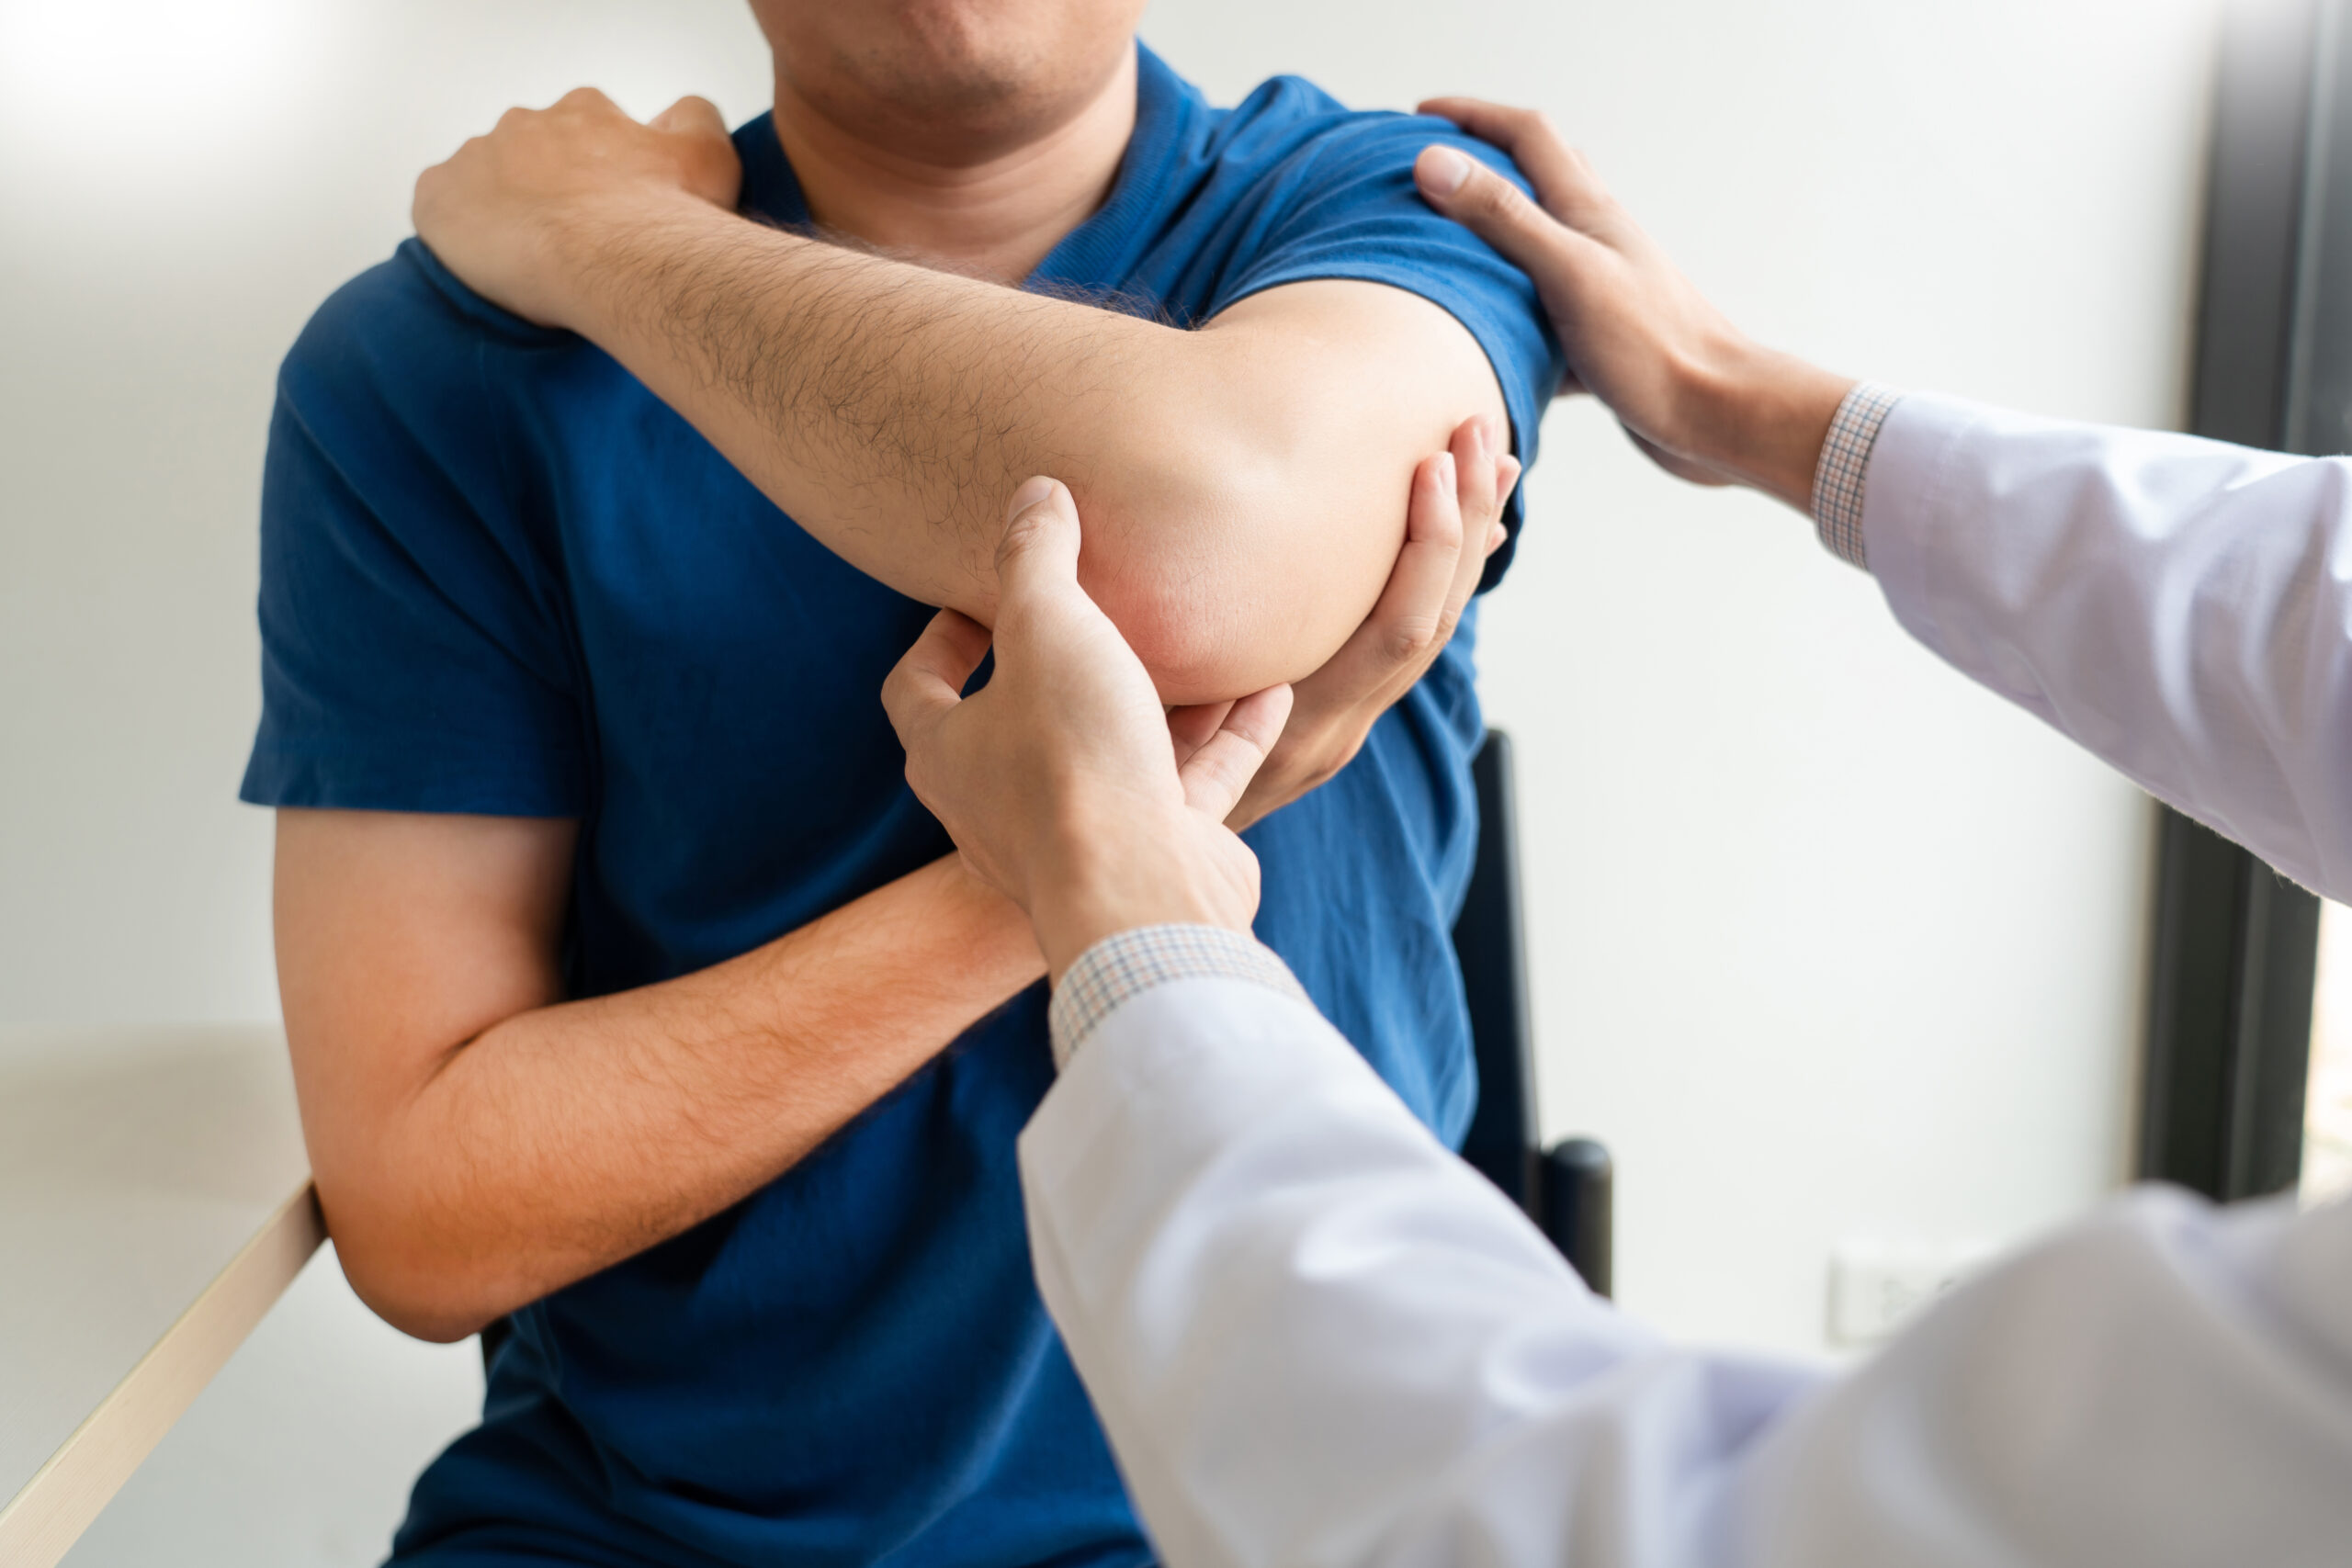 Q & A with a Chiropractor: The Benefit of Combining Physical Therapy and Chiropractic Care